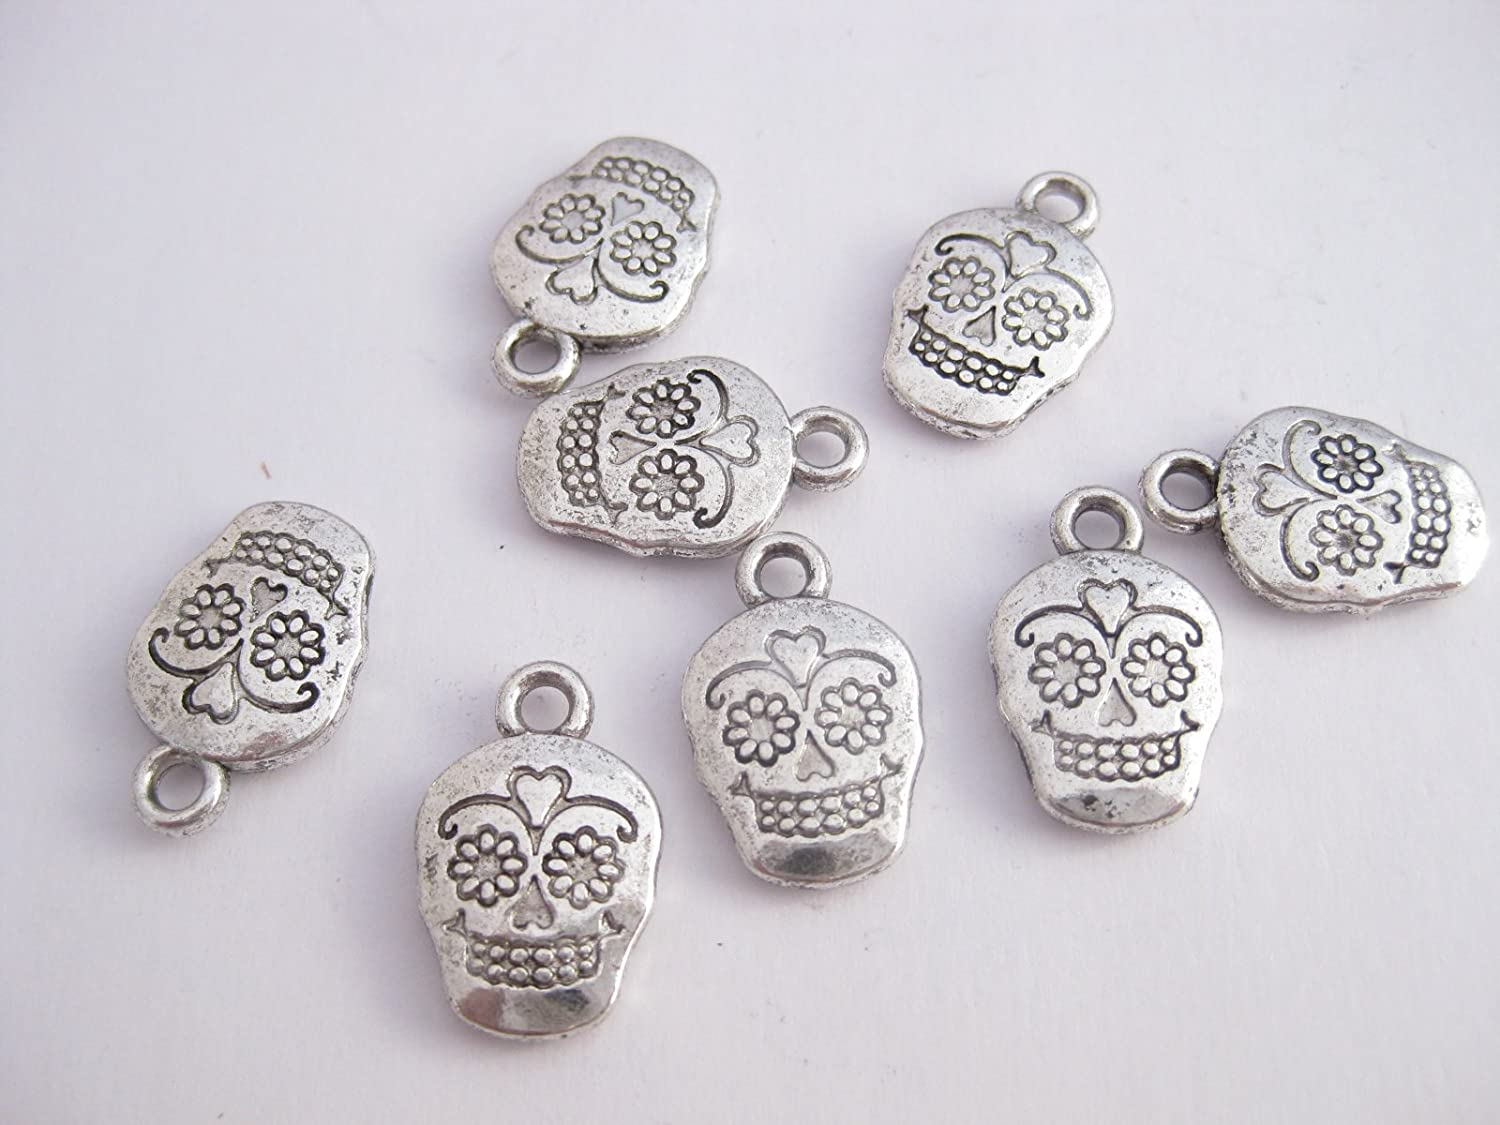 12 Mexican 'Day of the Dead' Sugar Skull Style Charms 18mm x 12mm. CH054 Enchanted Jewels